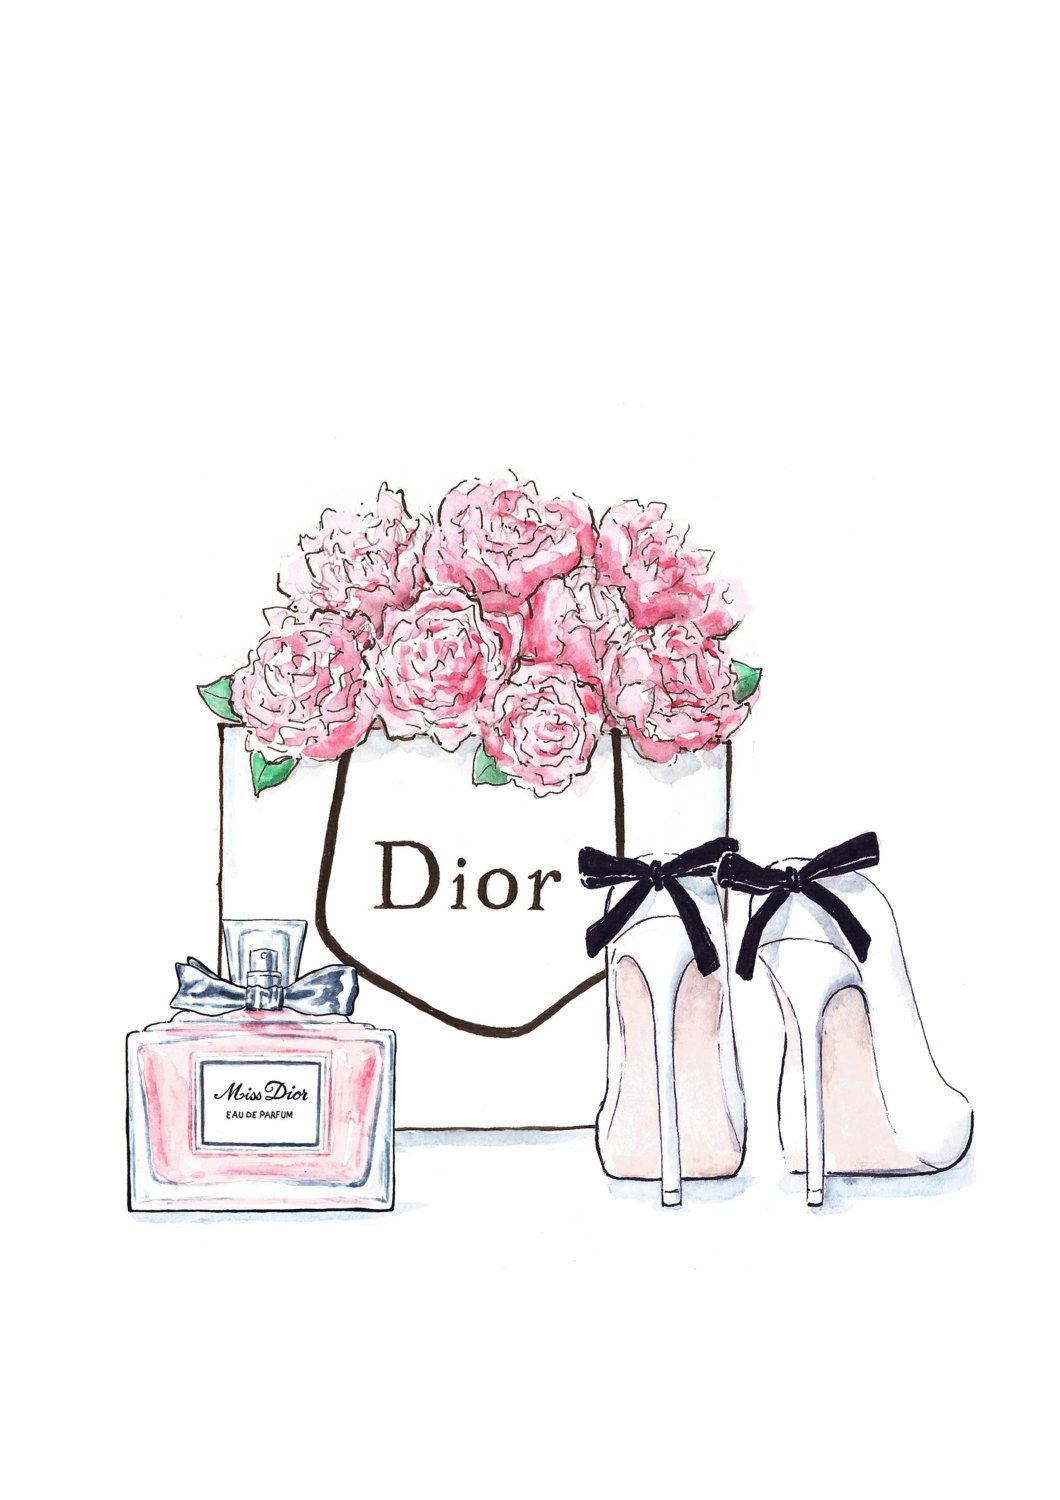 Fashion illustration Dior flowers, shoes and perfume